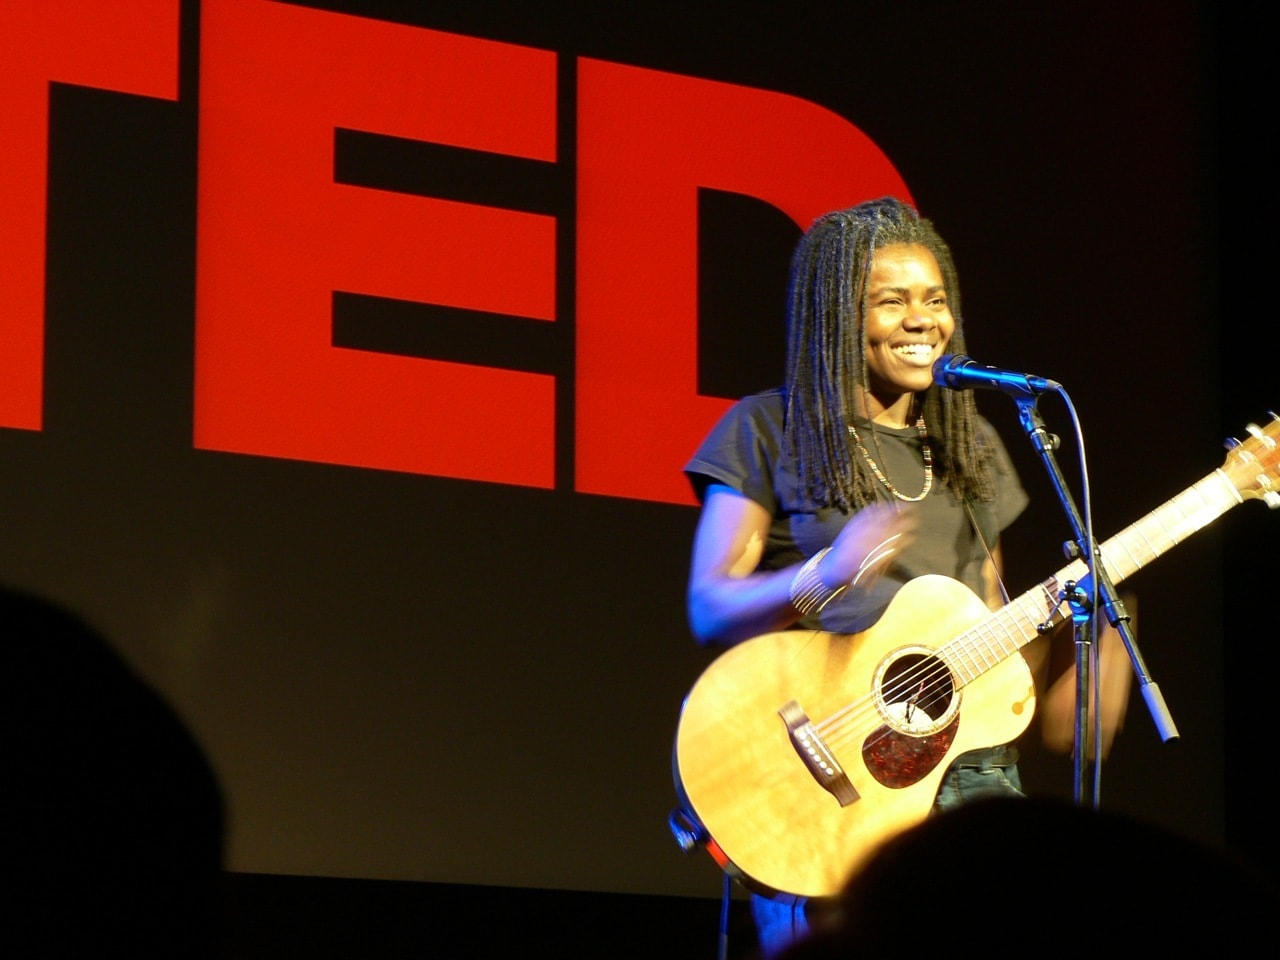 Tracy Chapman on stage at a TED event with her guitar